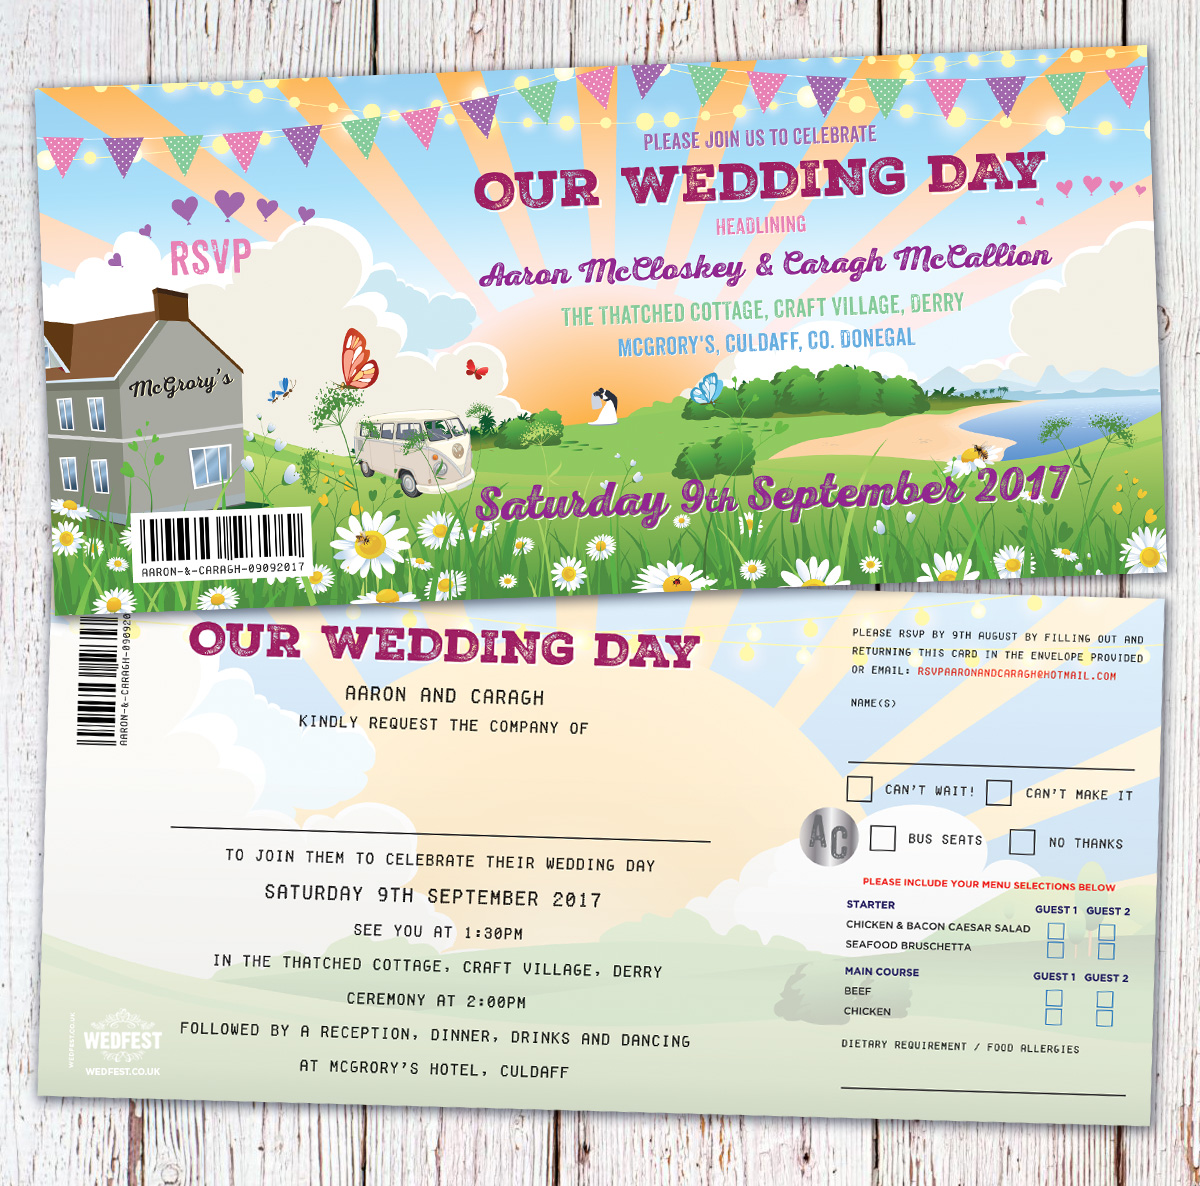 festival wedding donegal mcgrorys culdaff wedding invitations